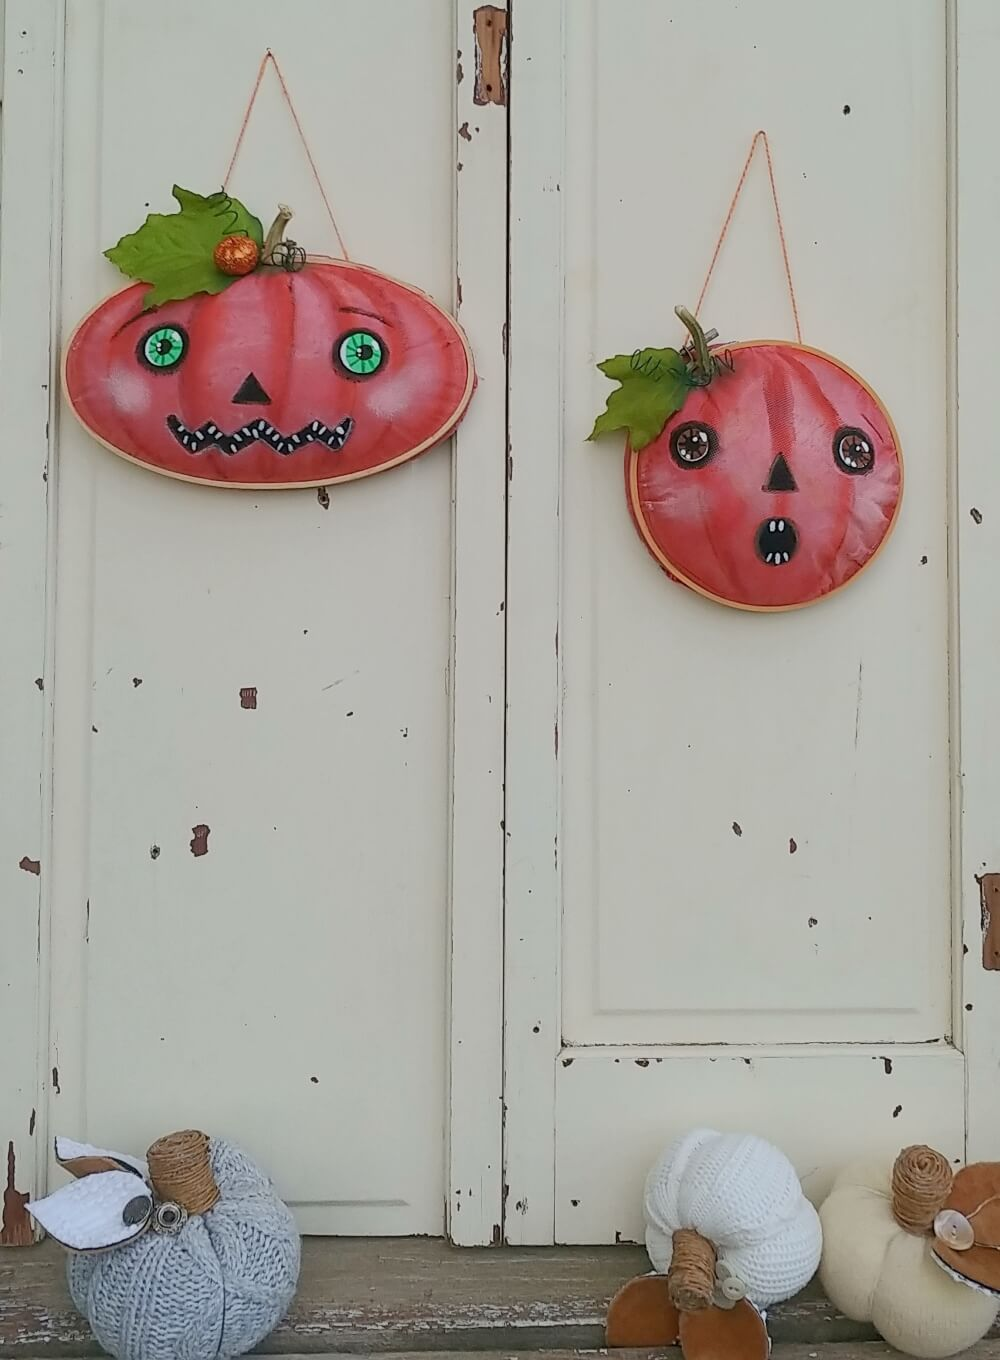 DIY Embroidery Hoop Pumpkins